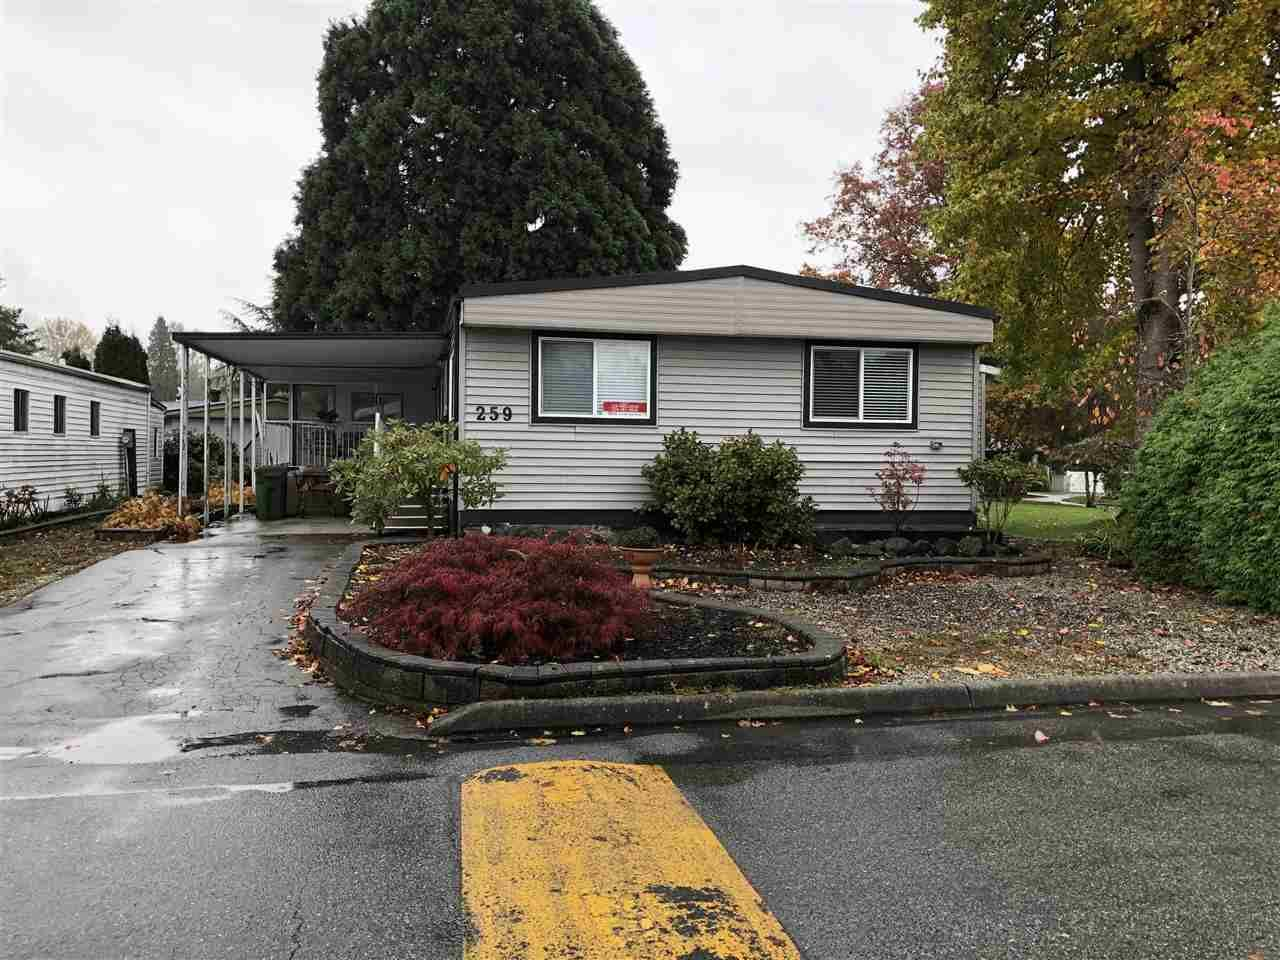 "Main Photo: 259 1840 160 Street in Surrey: King George Corridor Manufactured Home for sale in ""Breakaway Bays"" (South Surrey White Rock)  : MLS®# R2414223"